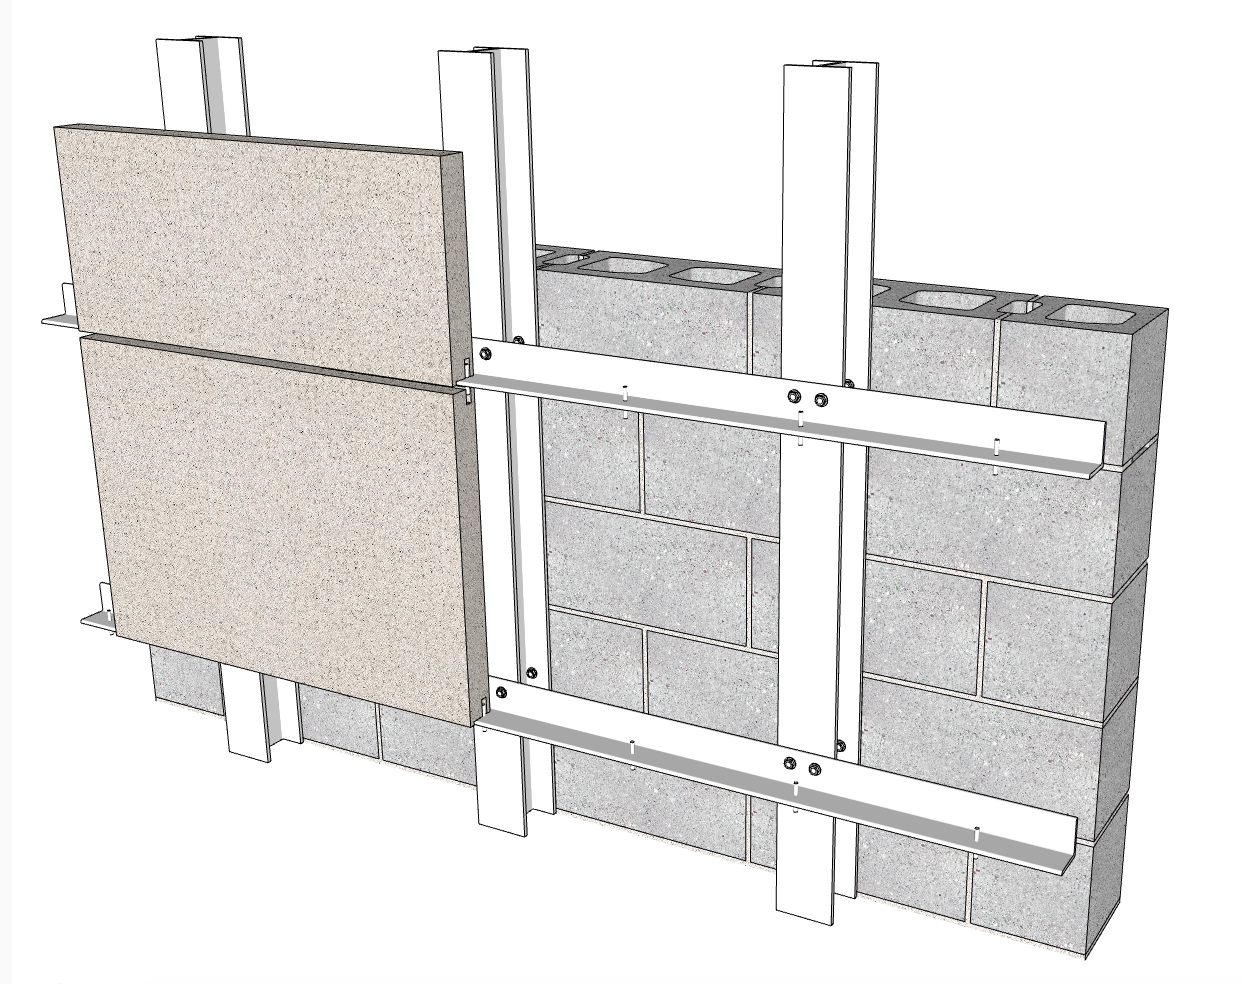 cladding-system-for-stone